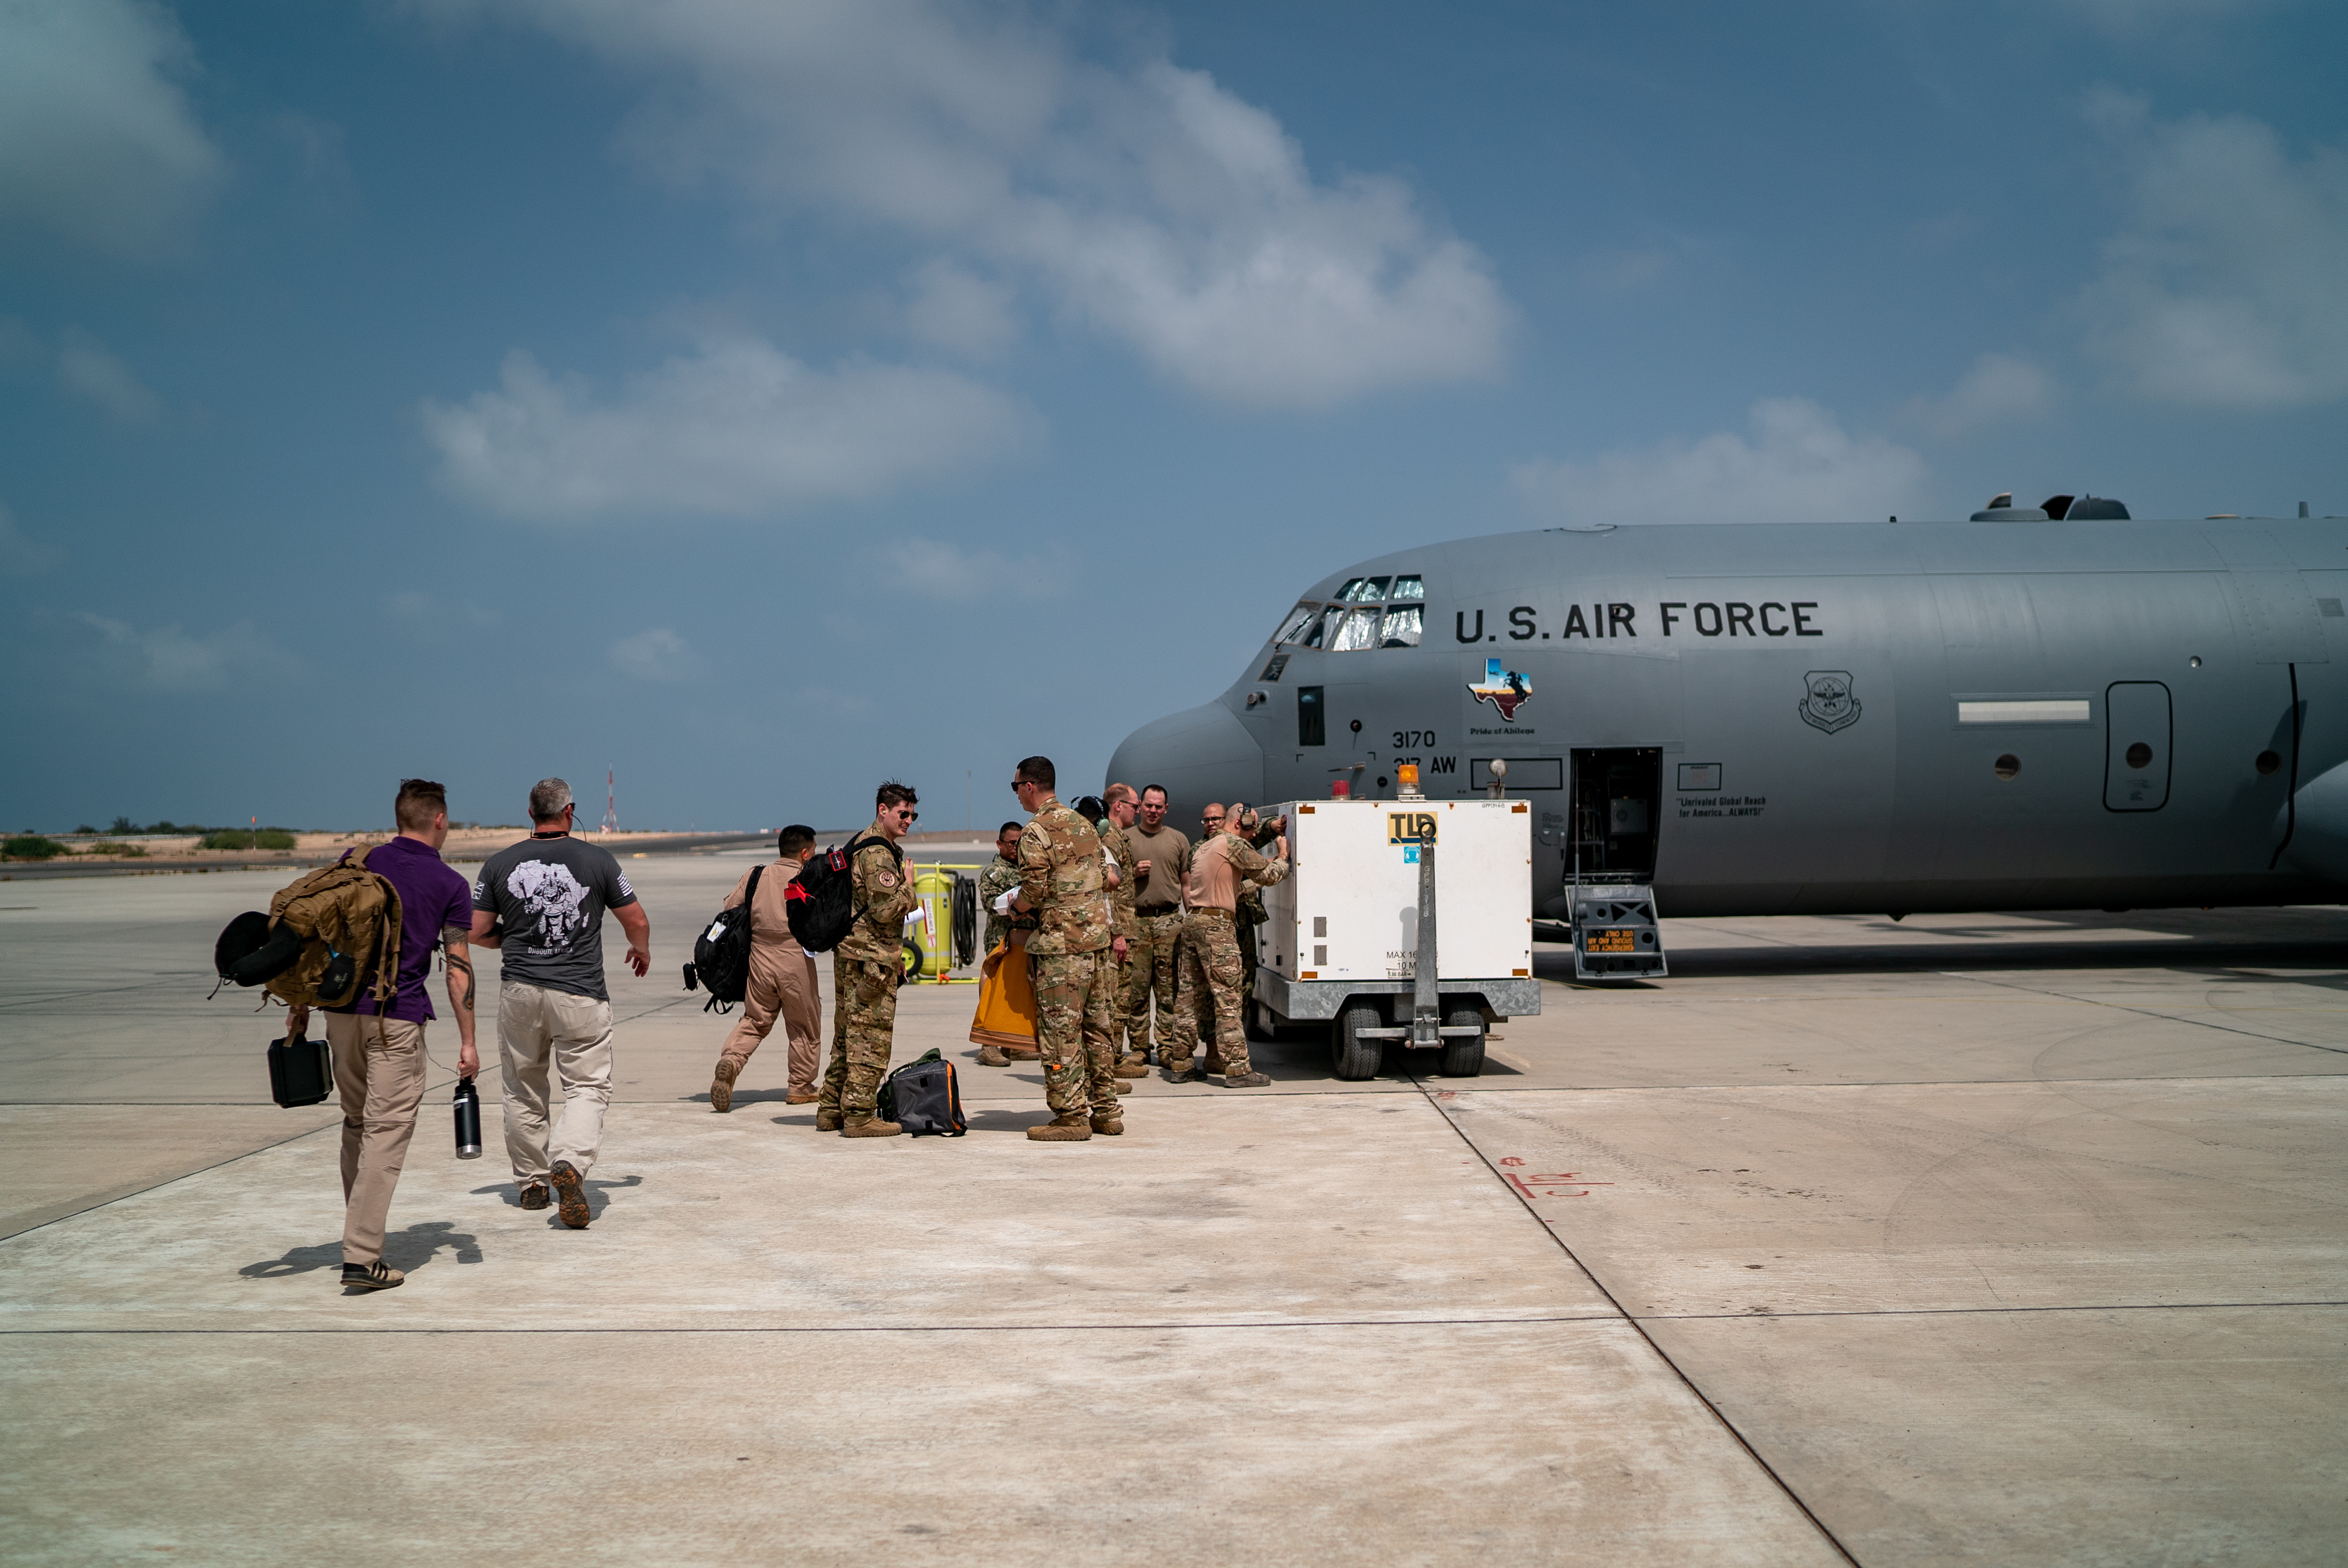 U.S. Airmen with the 449th Air Expeditionary Group supporting Combined Joint Task Force-Horn of Africa (CJTF-HOA), load supplies, personnel, and equipment onto a C-130J Hercules at Camp Lemonnier, Djibouti, March 26, 2019, for the U.S. Department of Defense's relief effort in the Republic of Mozambique and surrounding areas following Cyclone Idai. Teams from CJTF-HOA, which is leading DoD relief efforts, began immediate preparation to respond following a call for assistance from the U.S. Agency for International Development's Disaster Assistance Response Team.  (U.S. Air Force photo by Tech. Sgt. Thomas Grimes)